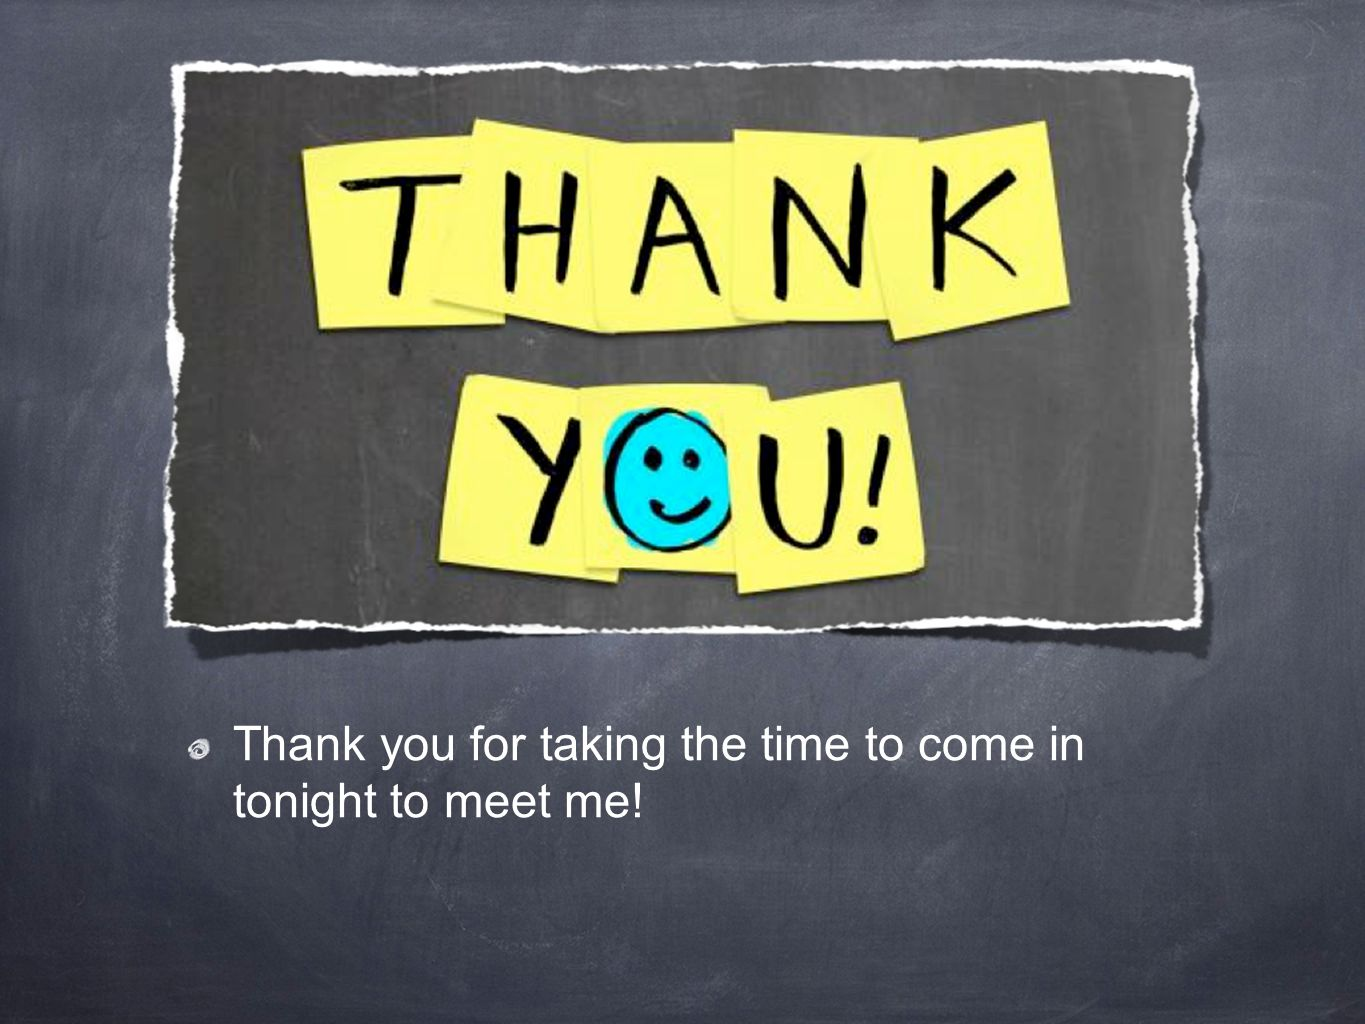 THANK YOU! Thank you for taking the time to come in tonight to meet me!